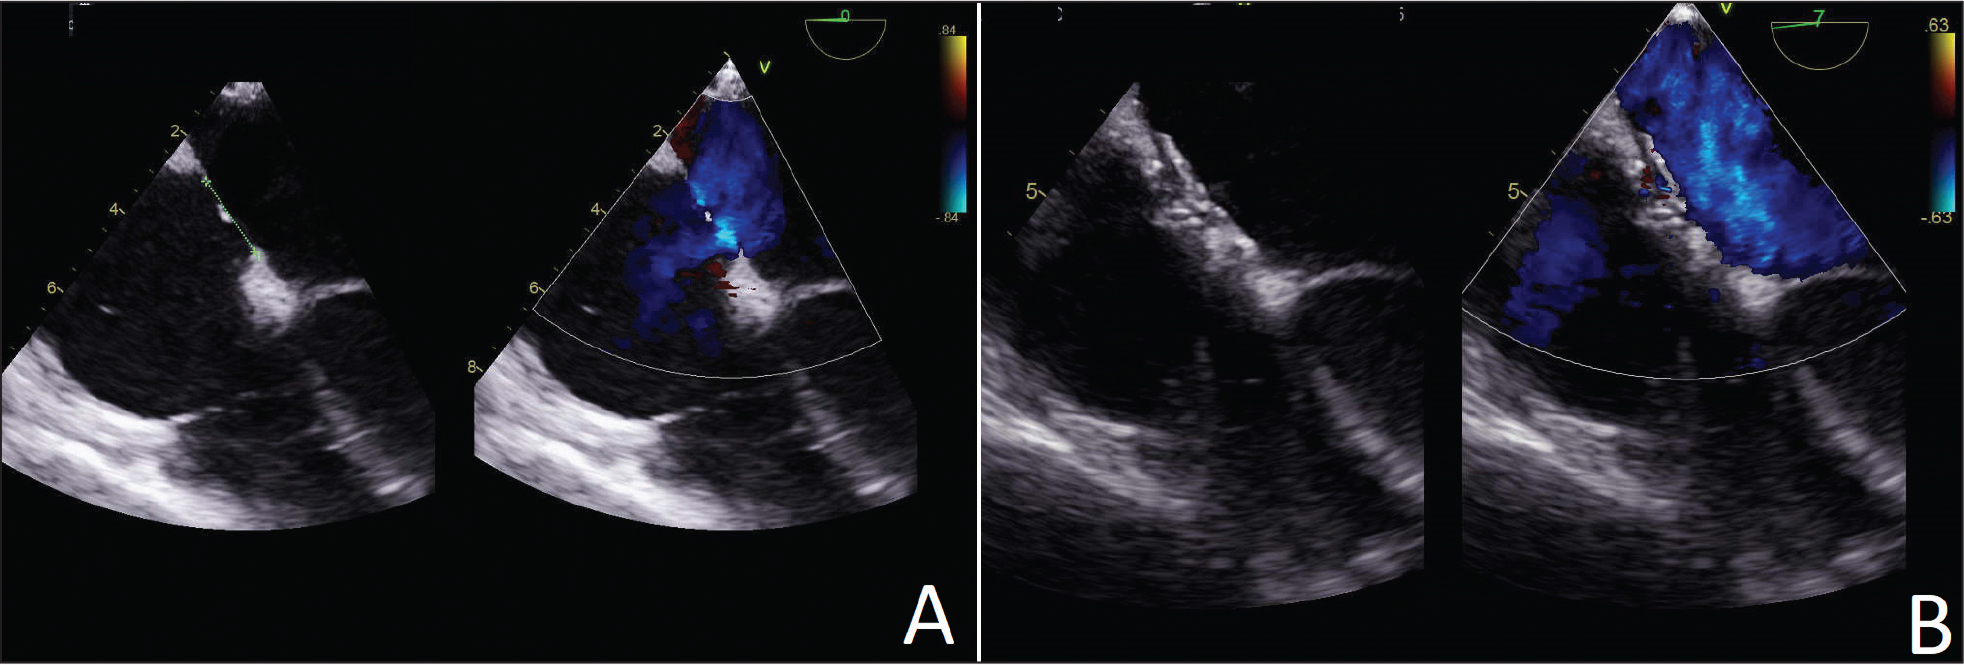 (A) Transesophageal echocardiogram displays a right-to left shunt through the atrial septal defect. (B) Transesophageal echocardiogram after percutaneous closure of the atrial septal defect.